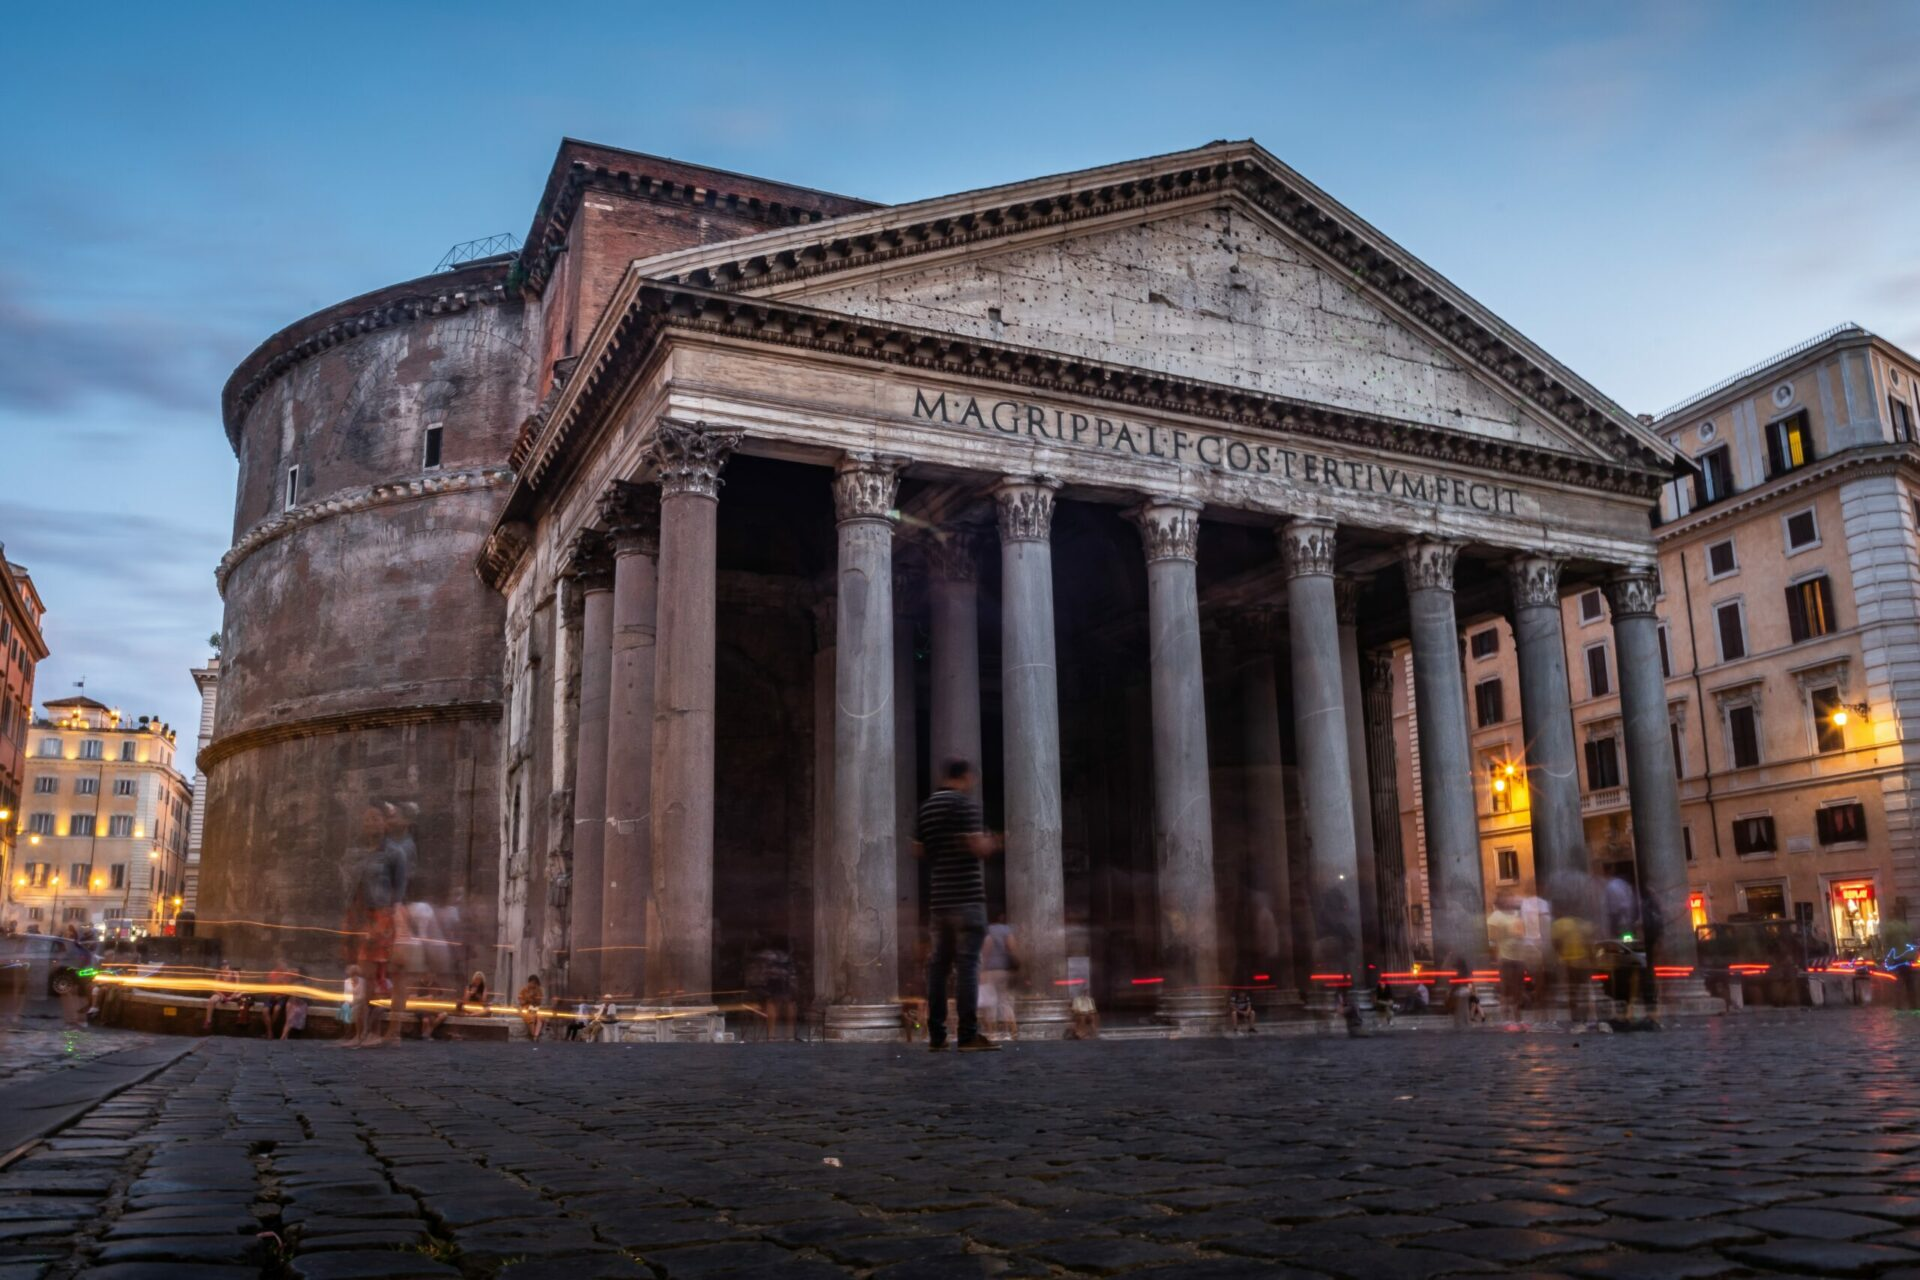 What Is The Average Cost For Main Attractions In Rome? 0